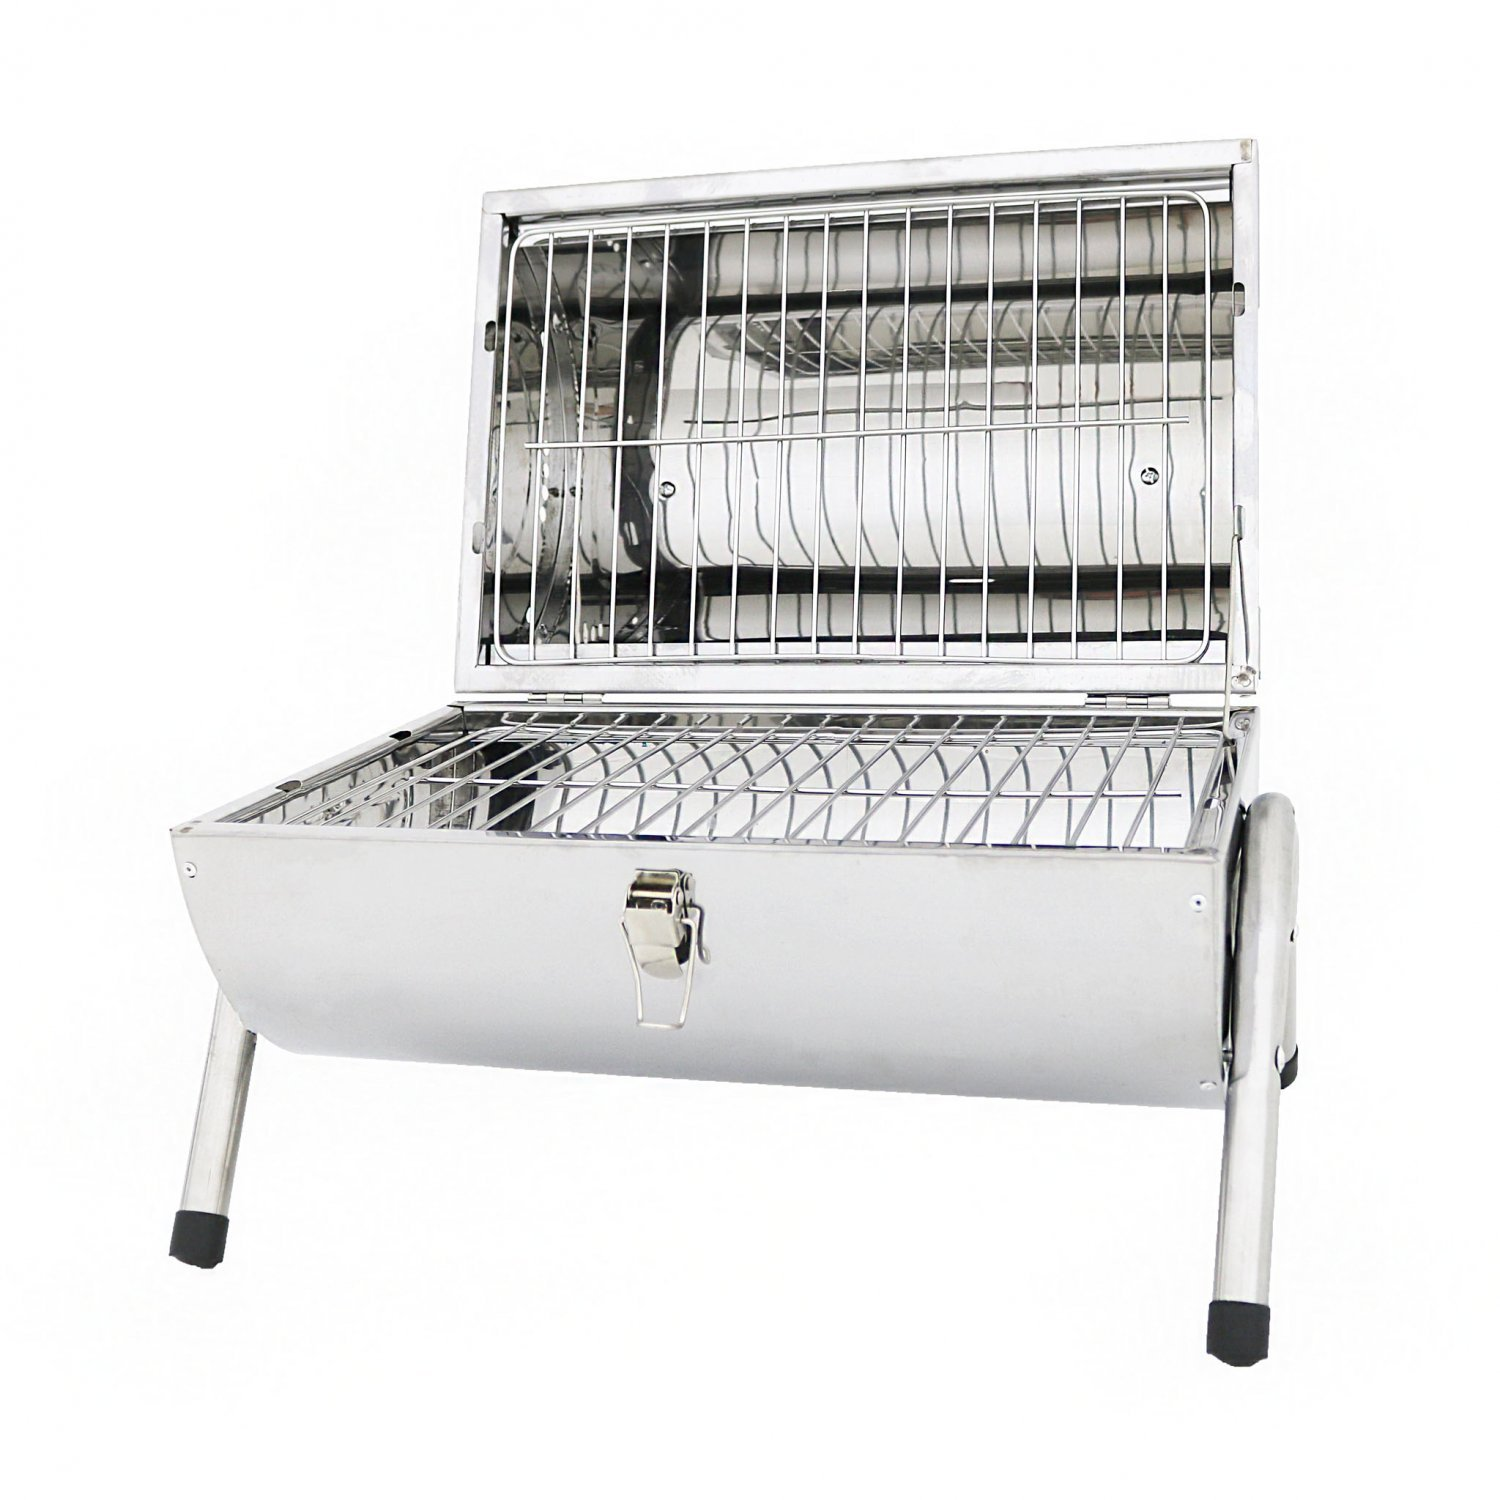 Portable Stainless Steel Barrel Bbq Charcoal Barbecue Table Top